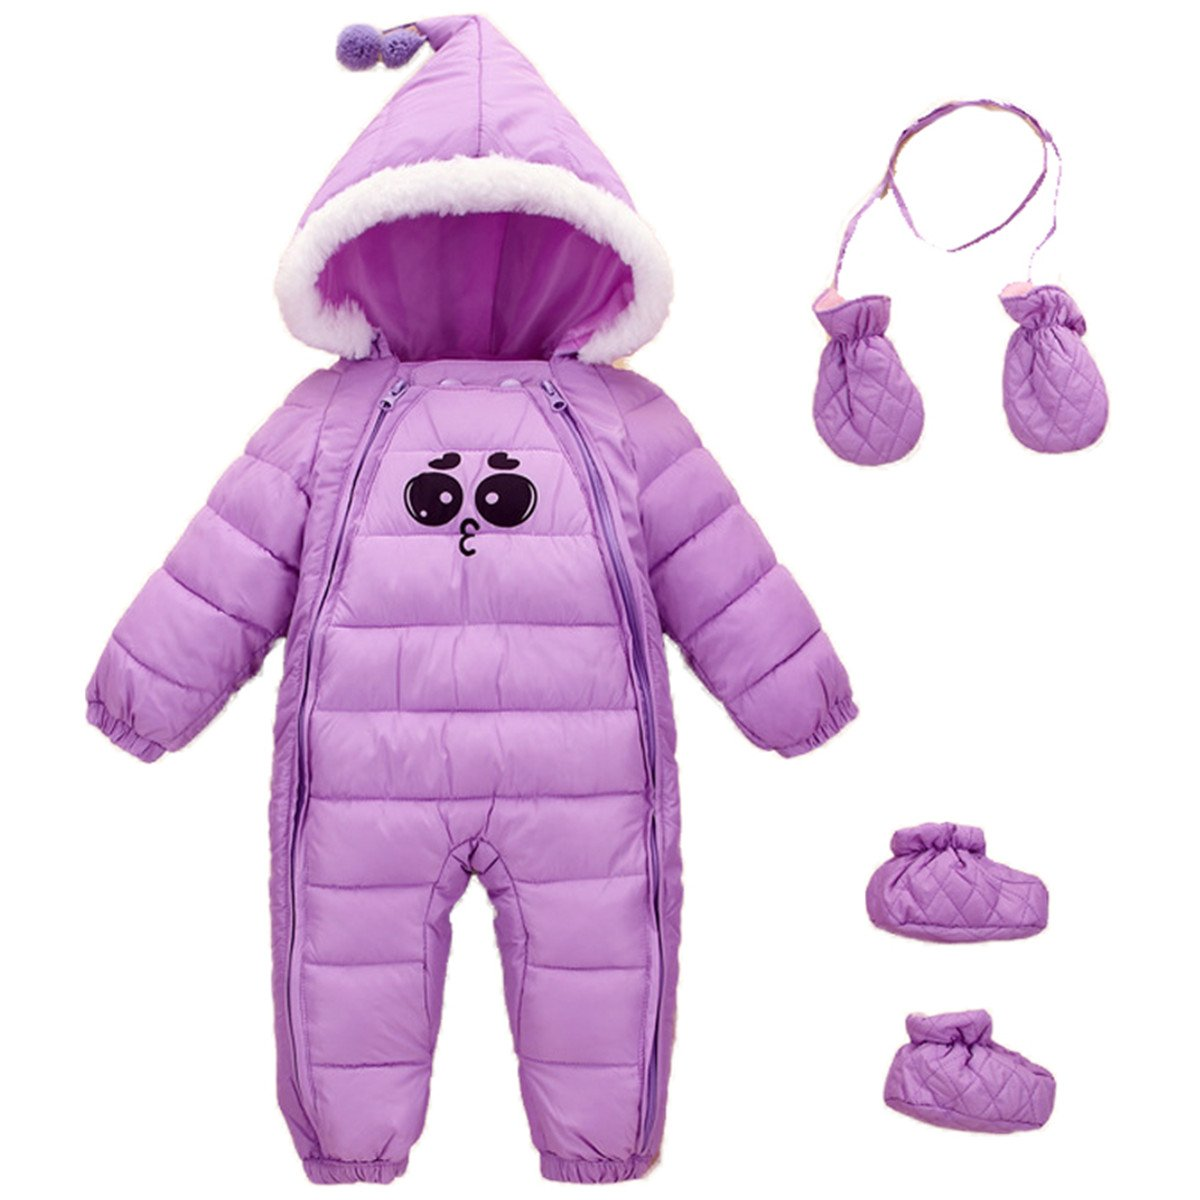 JELEUON Baby Girls Boys One Piece Two Zipper Cartoon Down Jacket Jumpsuit Romper with Gloves and Shoes 6-12 Months Purple by JELEUON